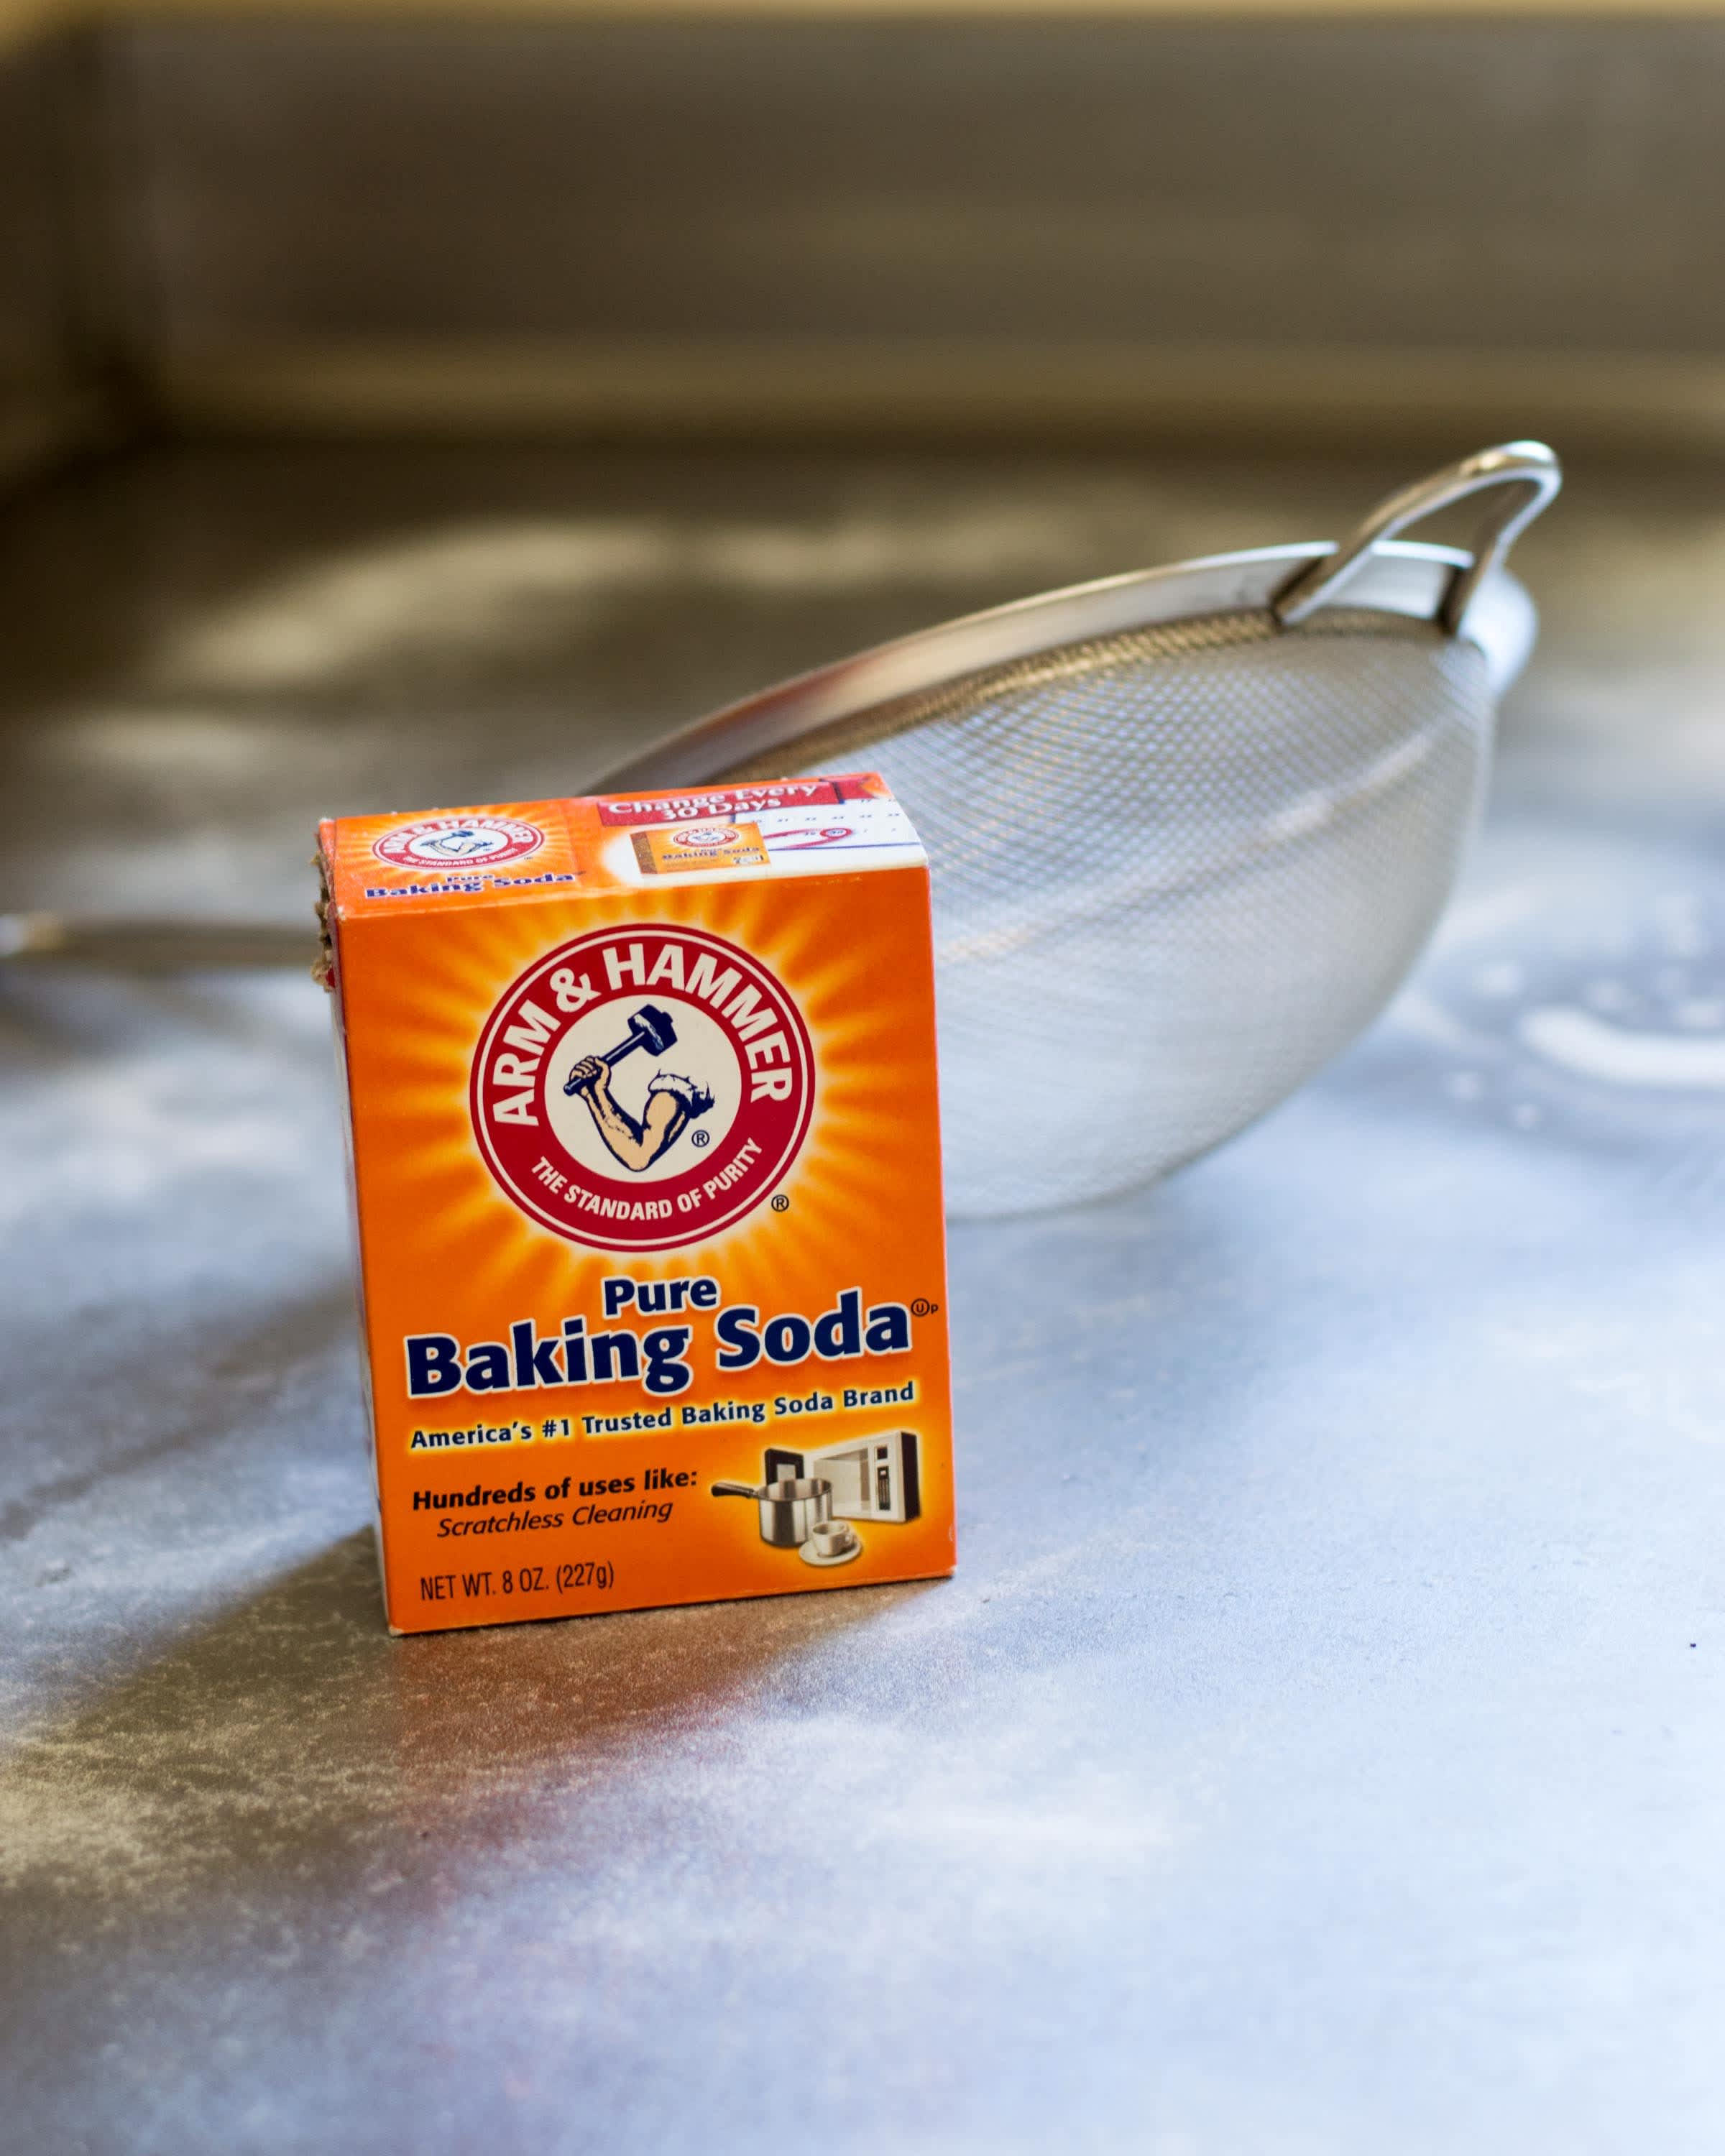 How To Clean Stainless Steel Countertops To a Shiny, Streak-Free Finish: gallery image 3